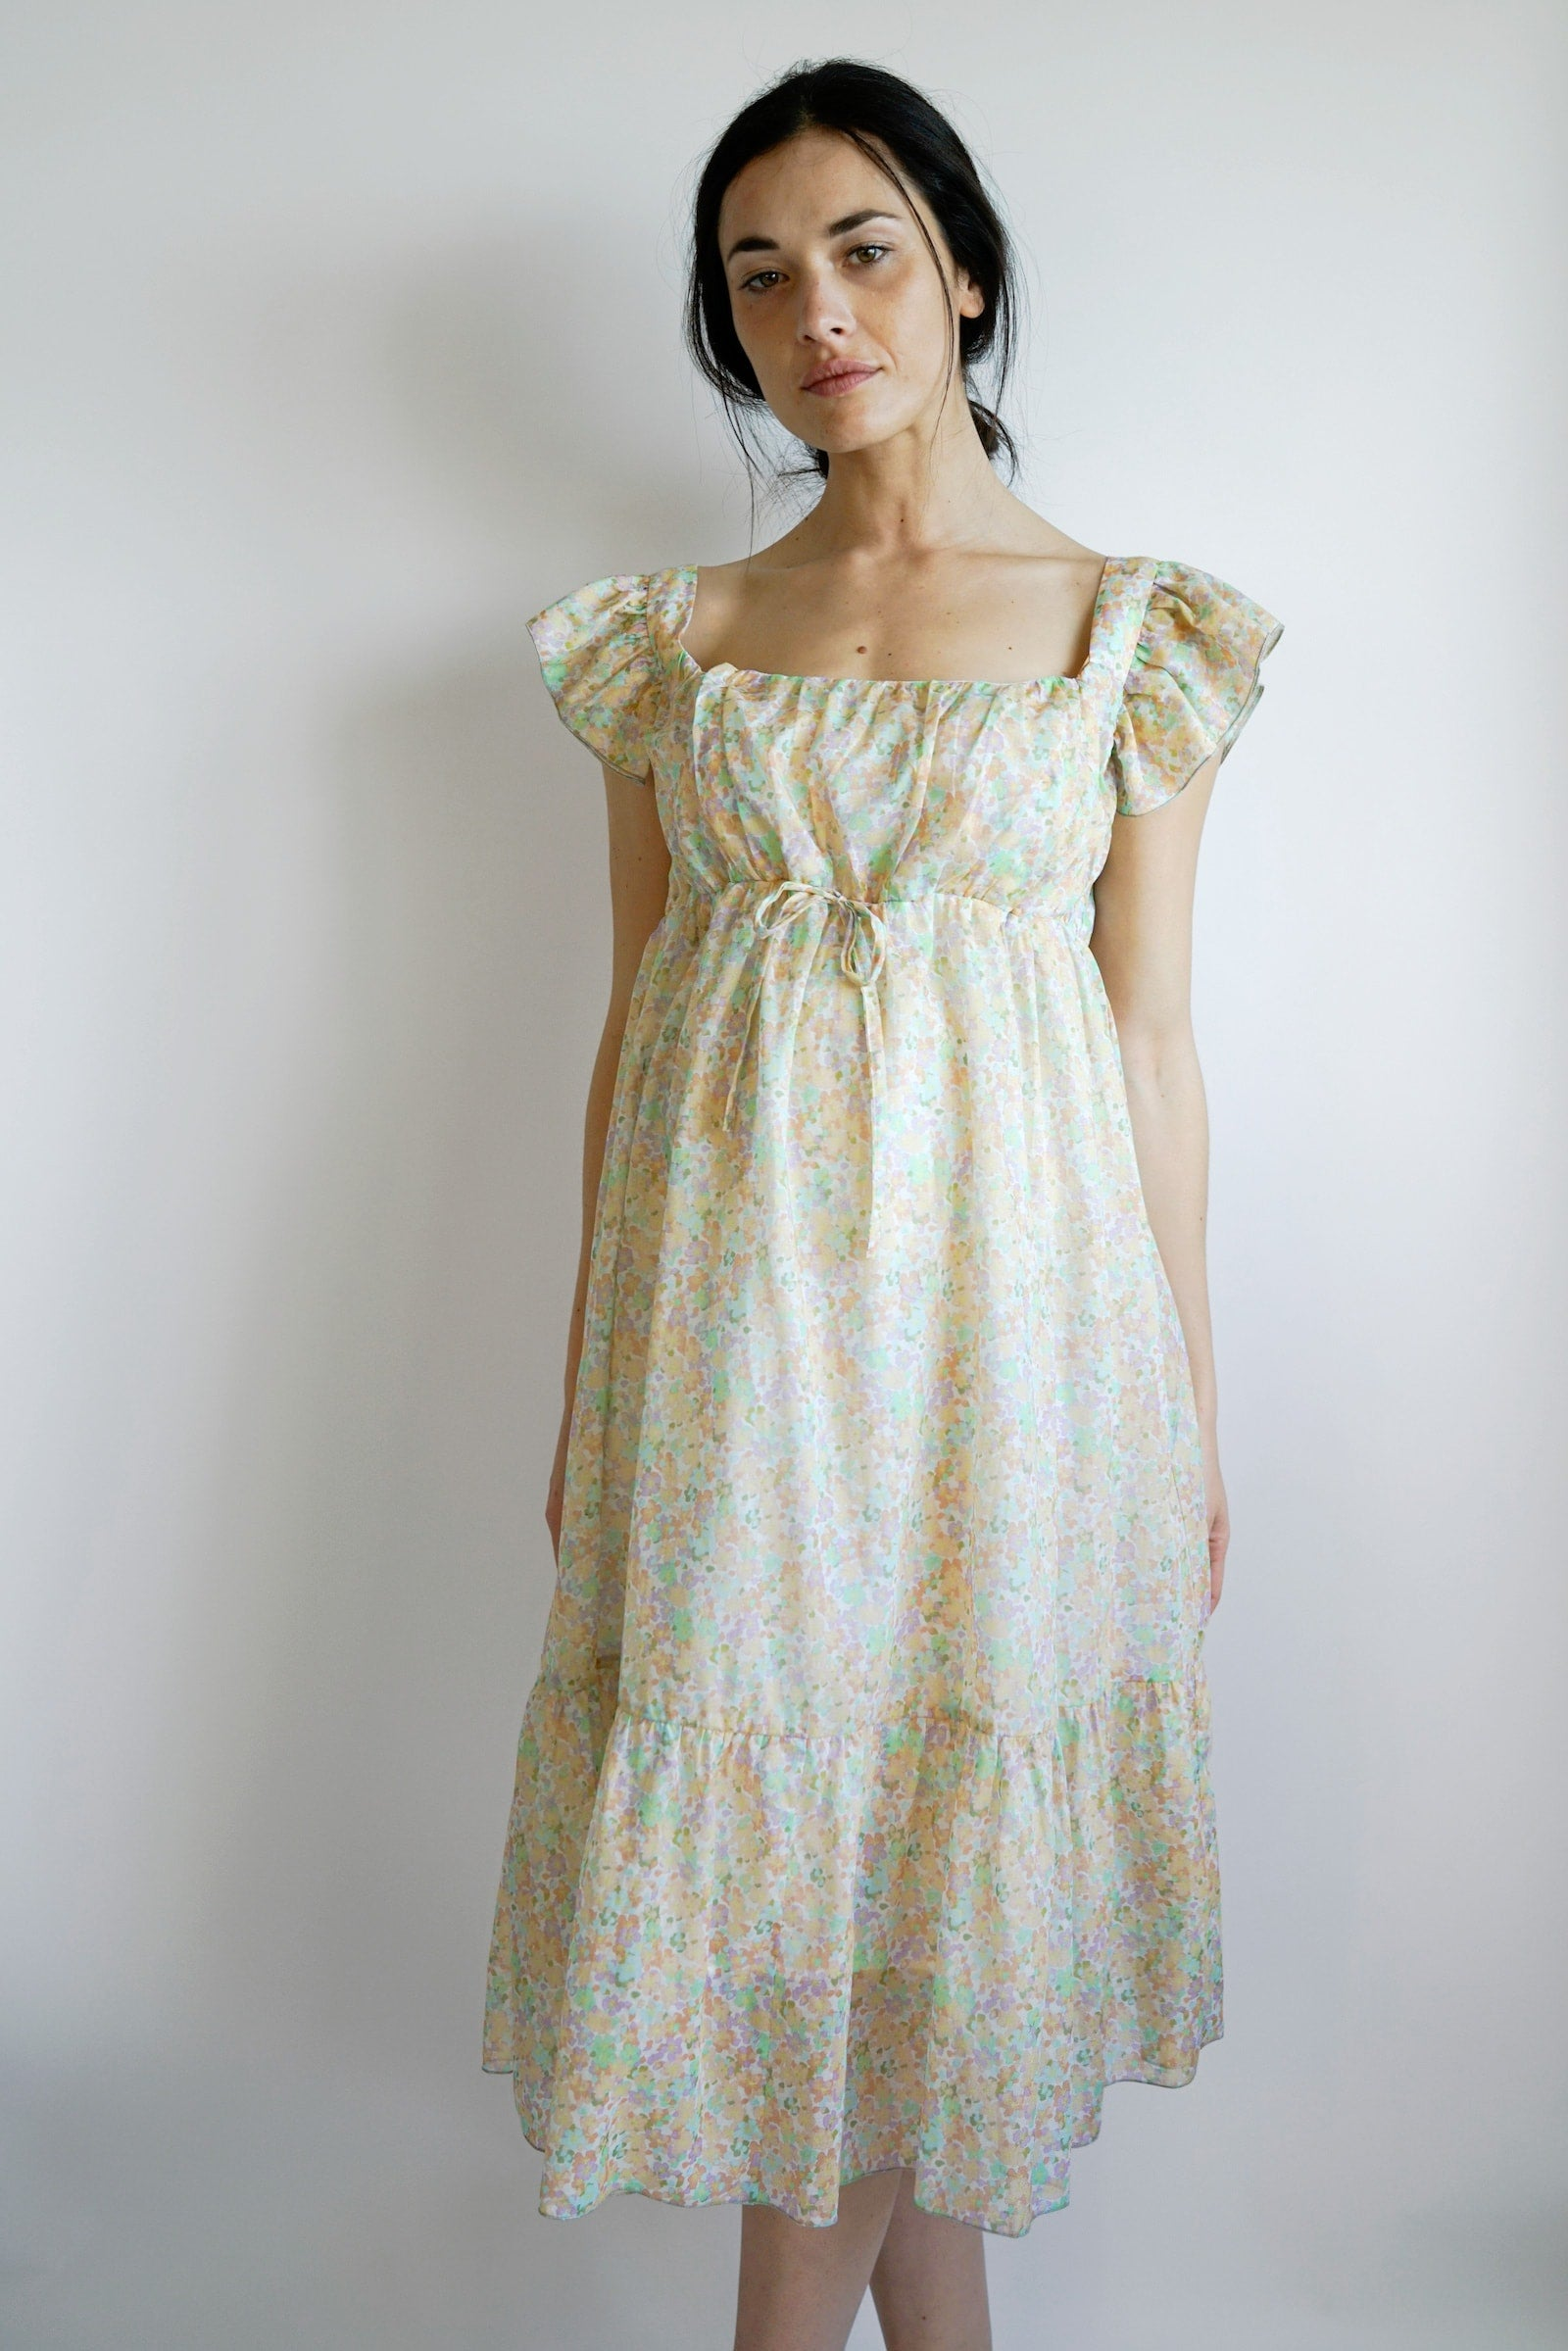 Camilla Maternity Dress - Pastel